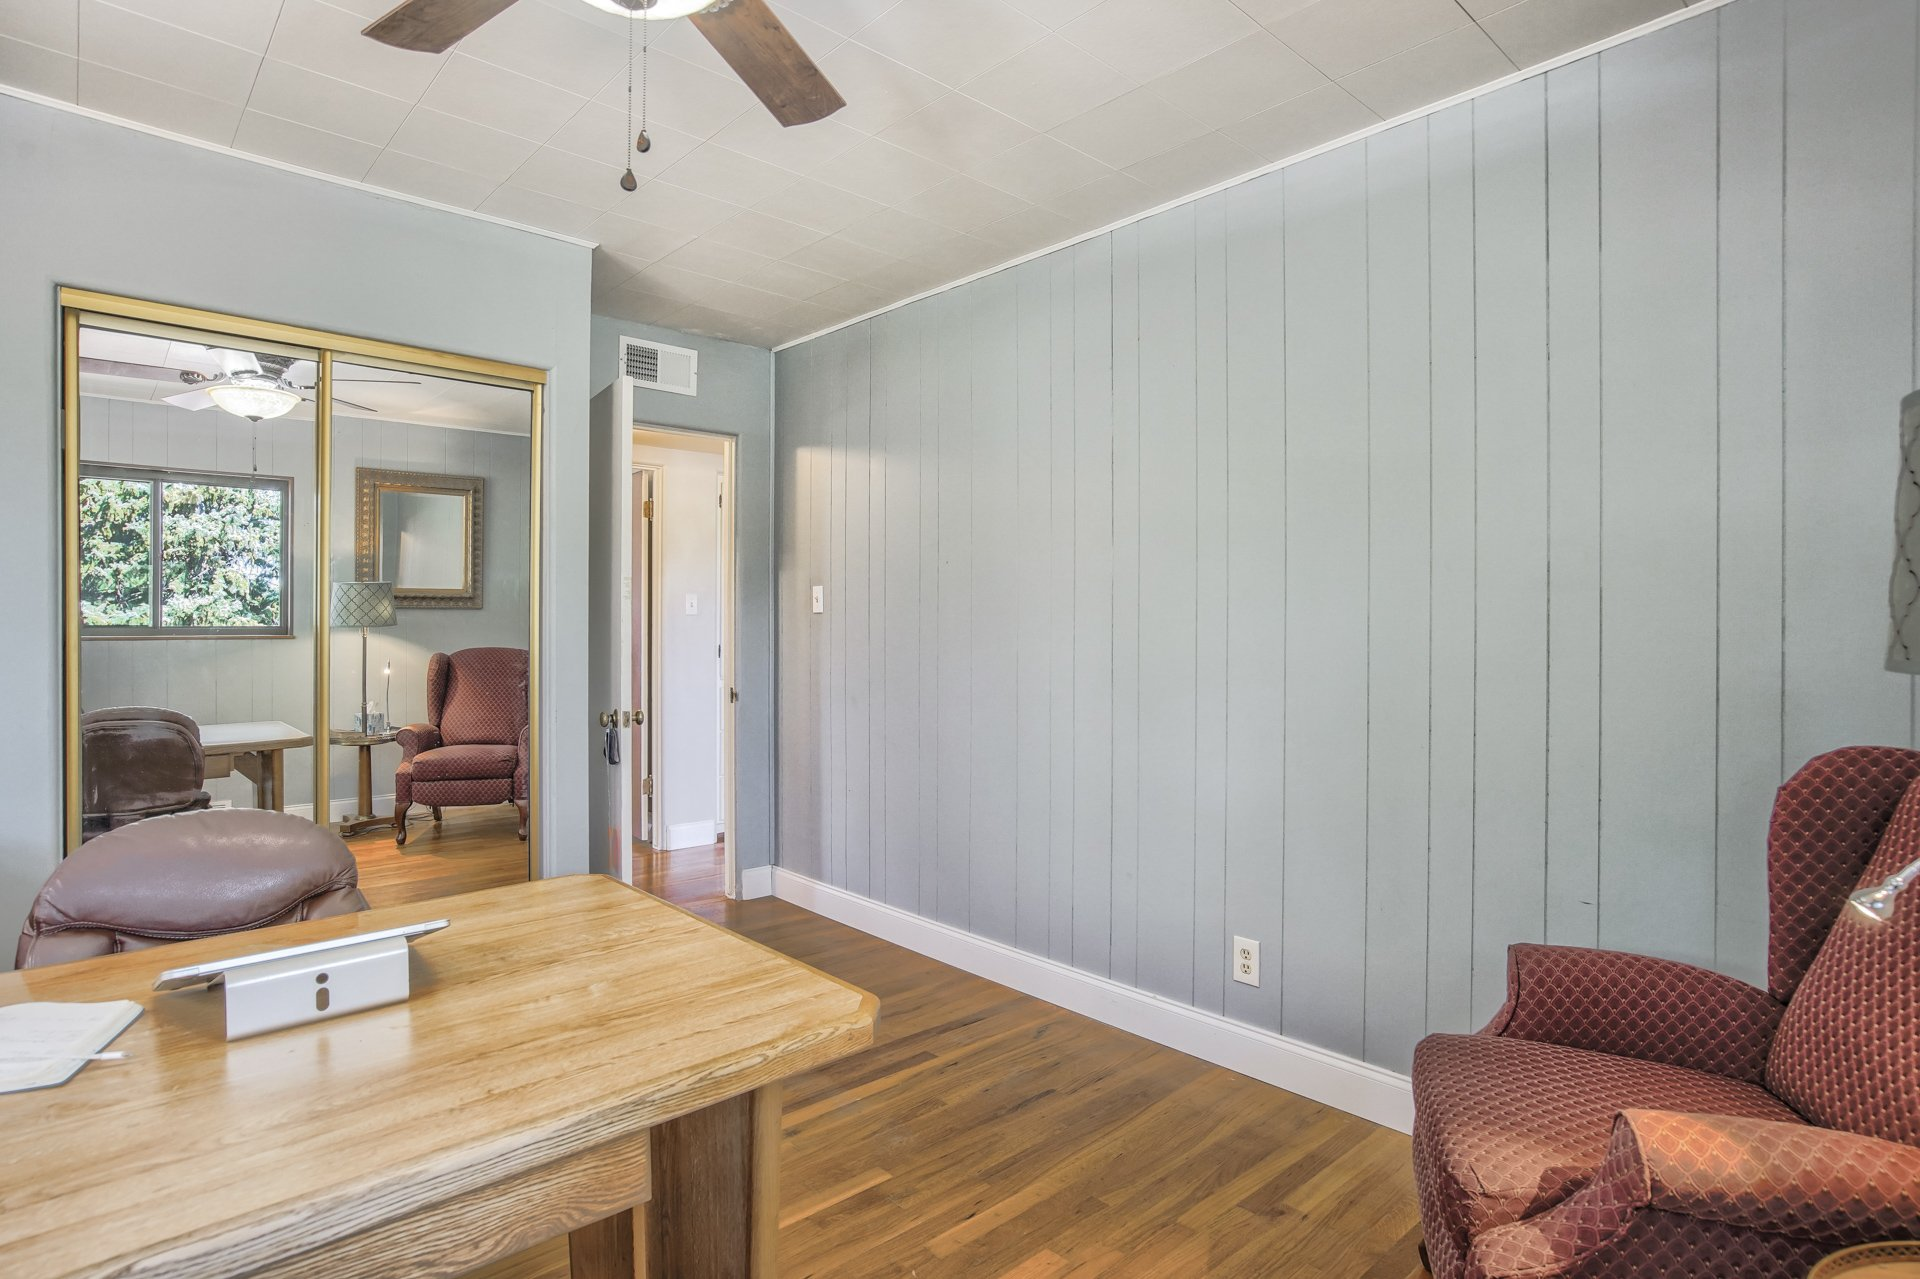 desk and chair in room with oak floors